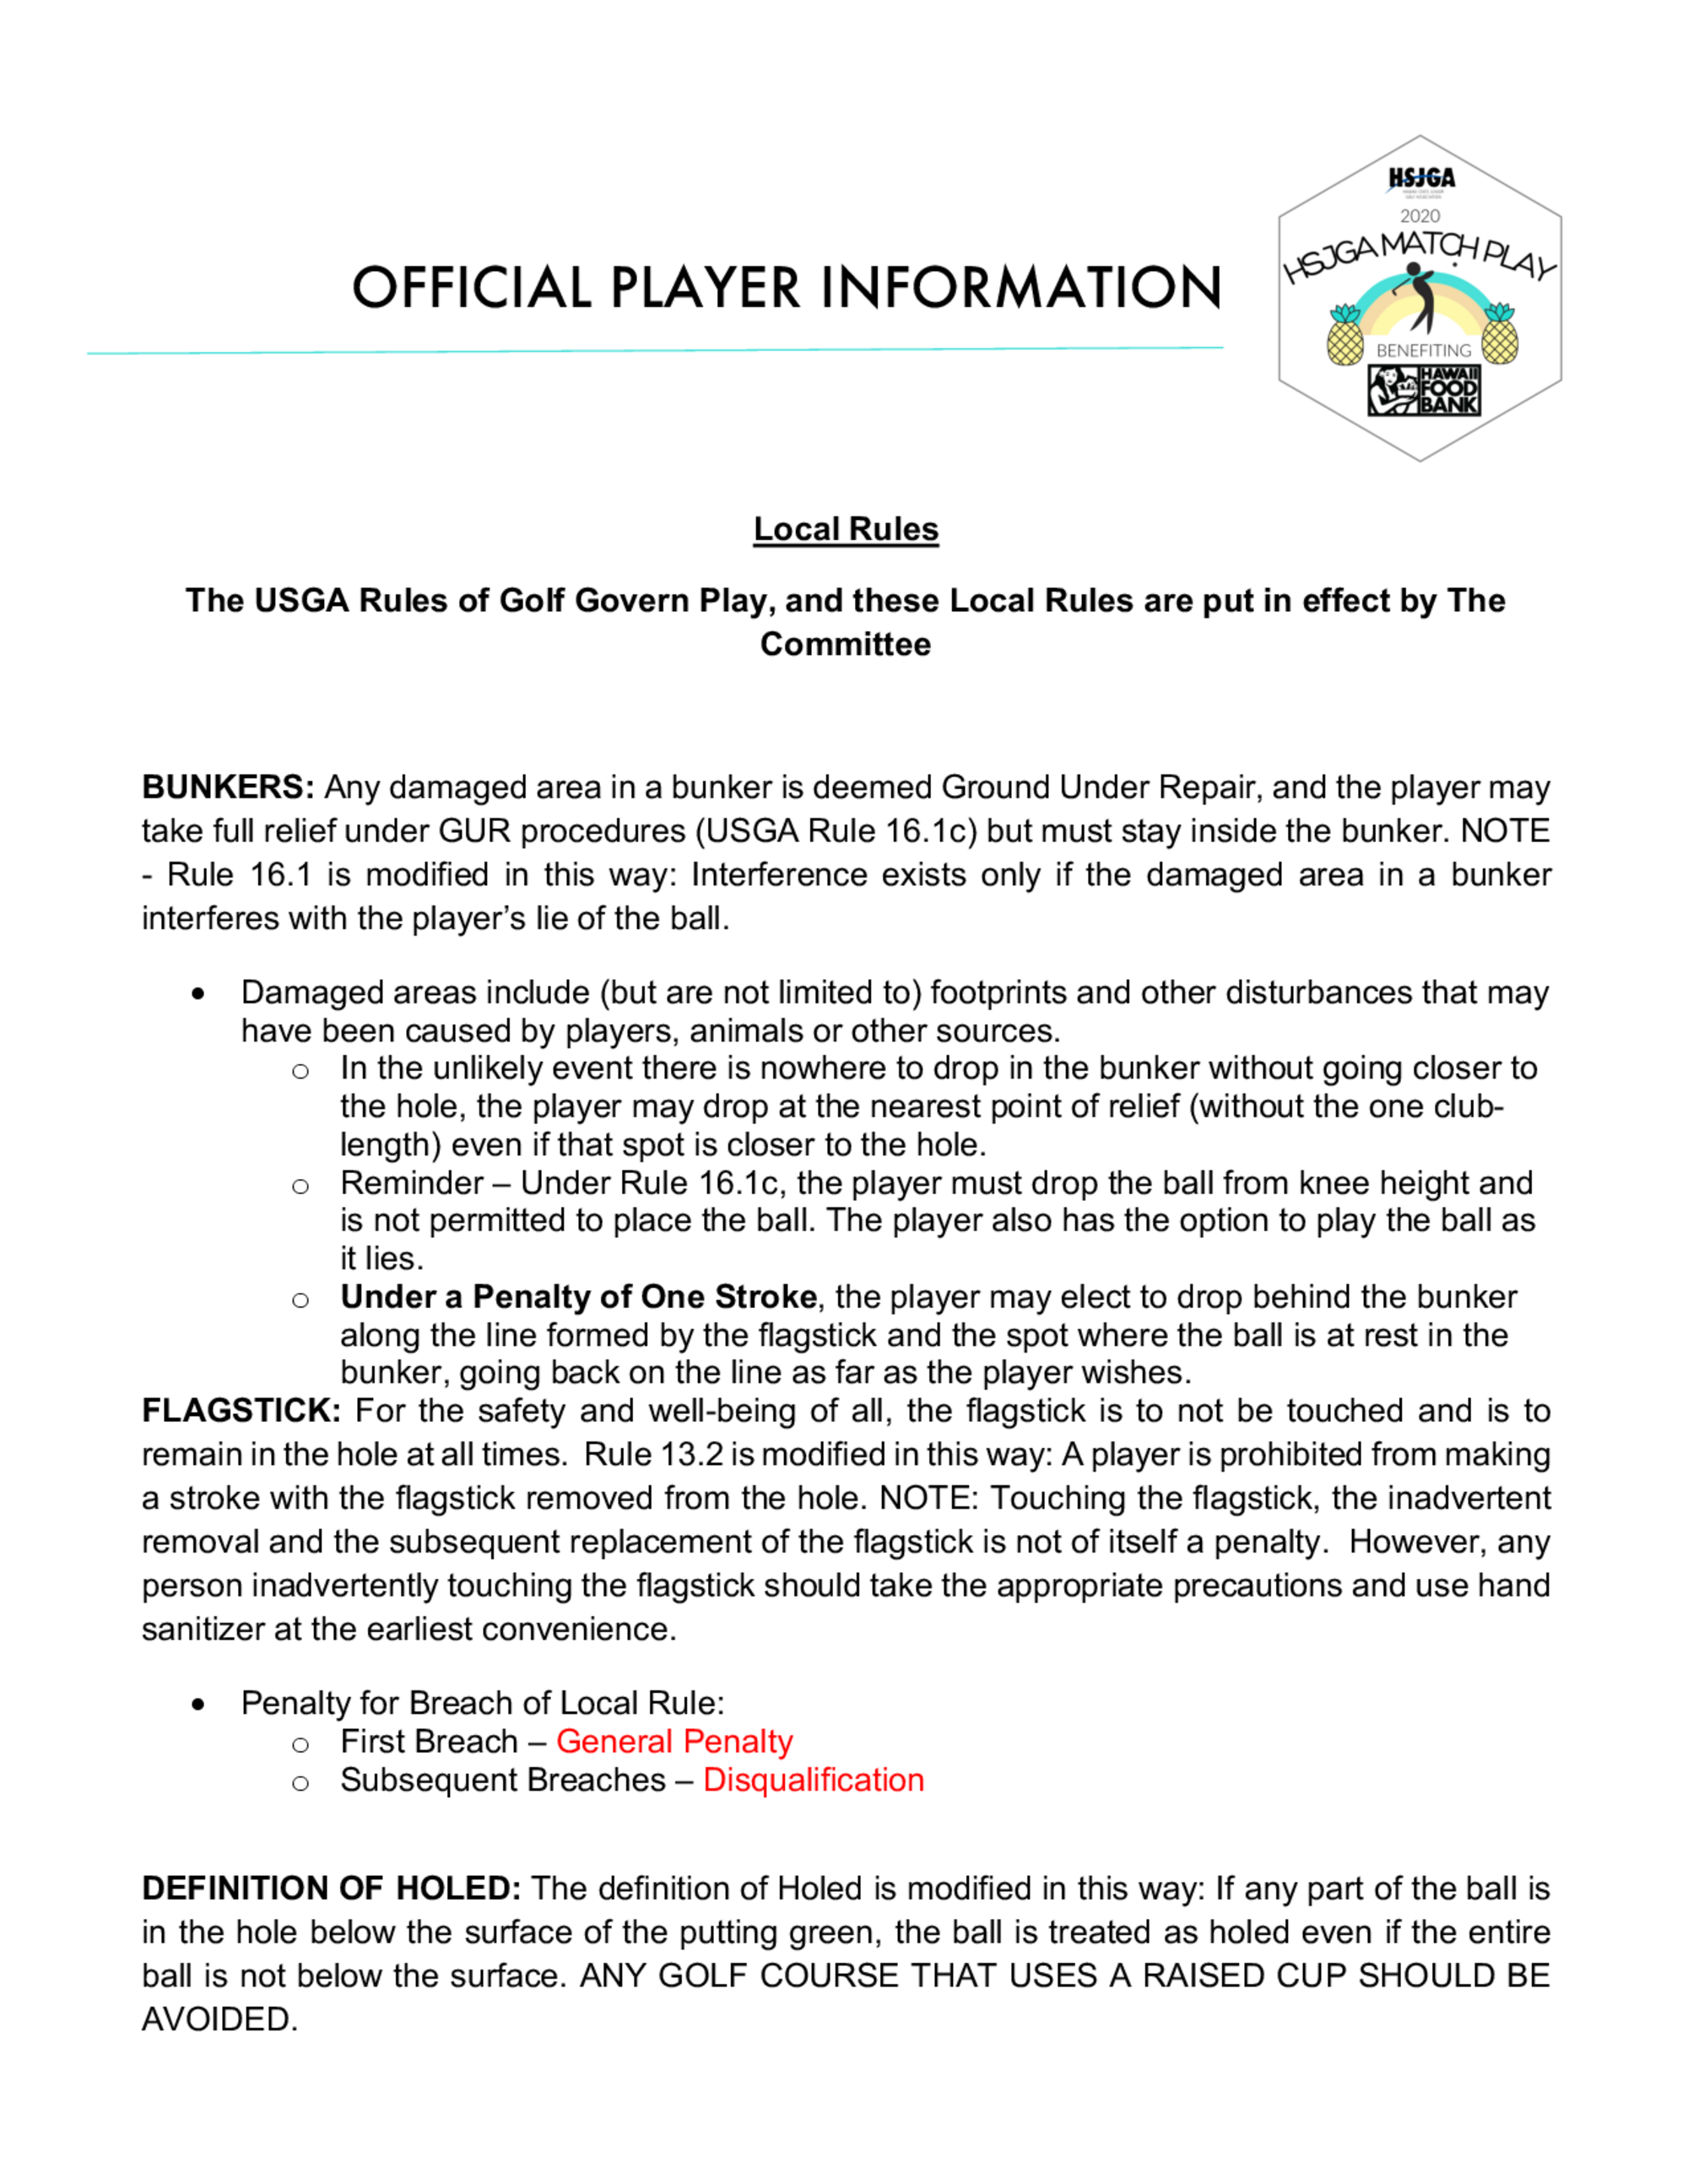 2020 match play player packet fnl 5